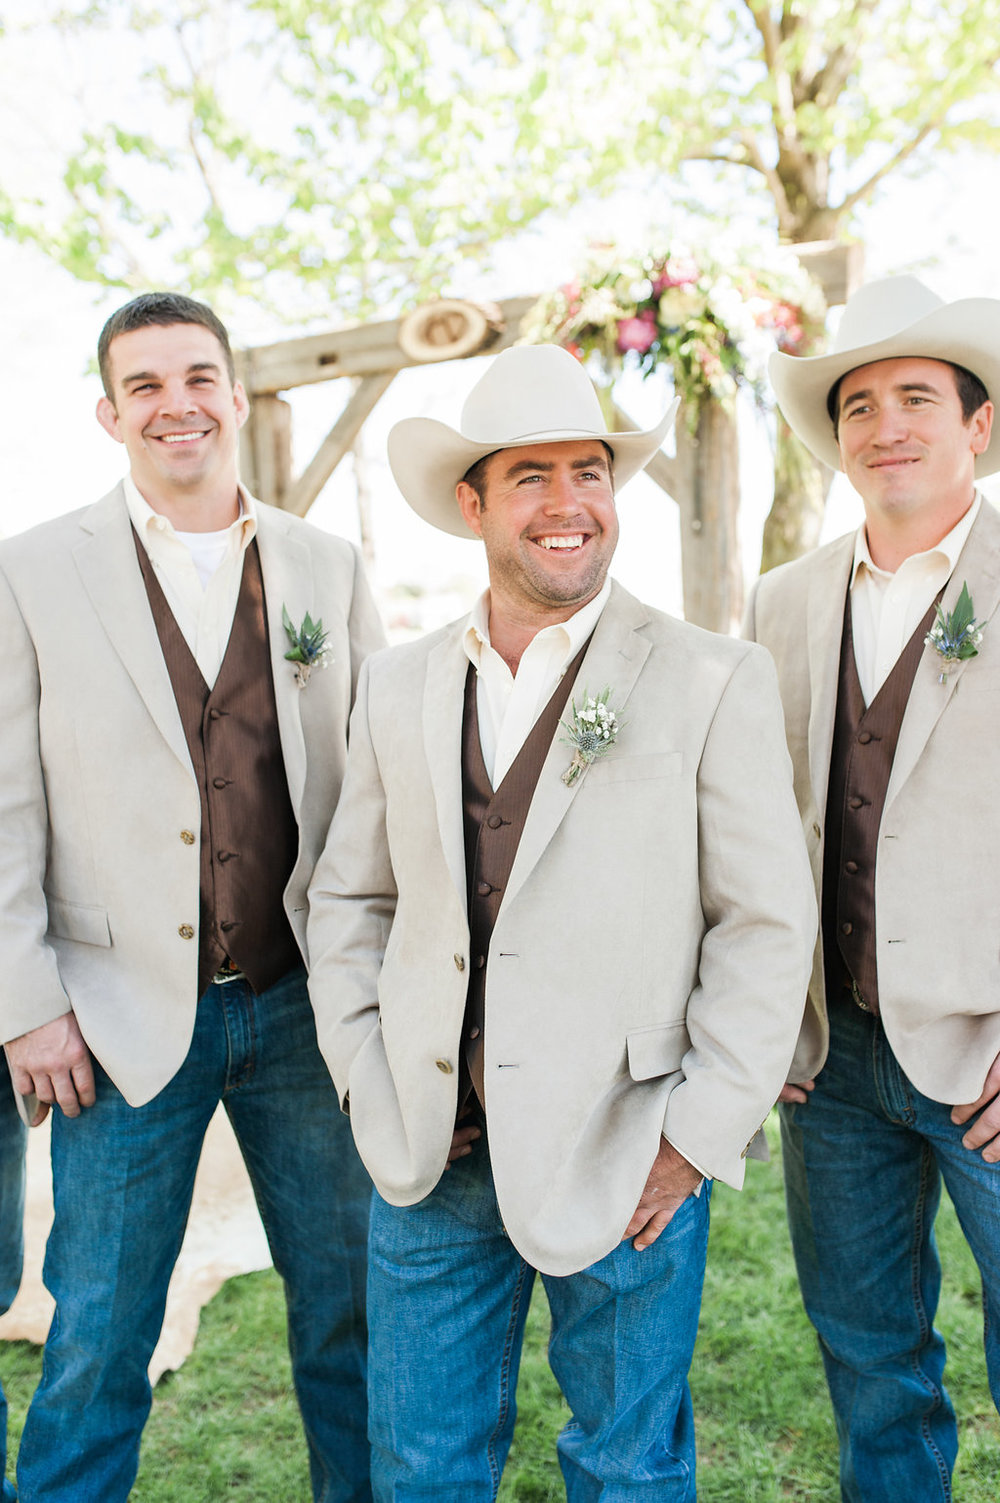 Farm Groomsmen Attire - Iowa Farm Wedding - Private Estate Weddings